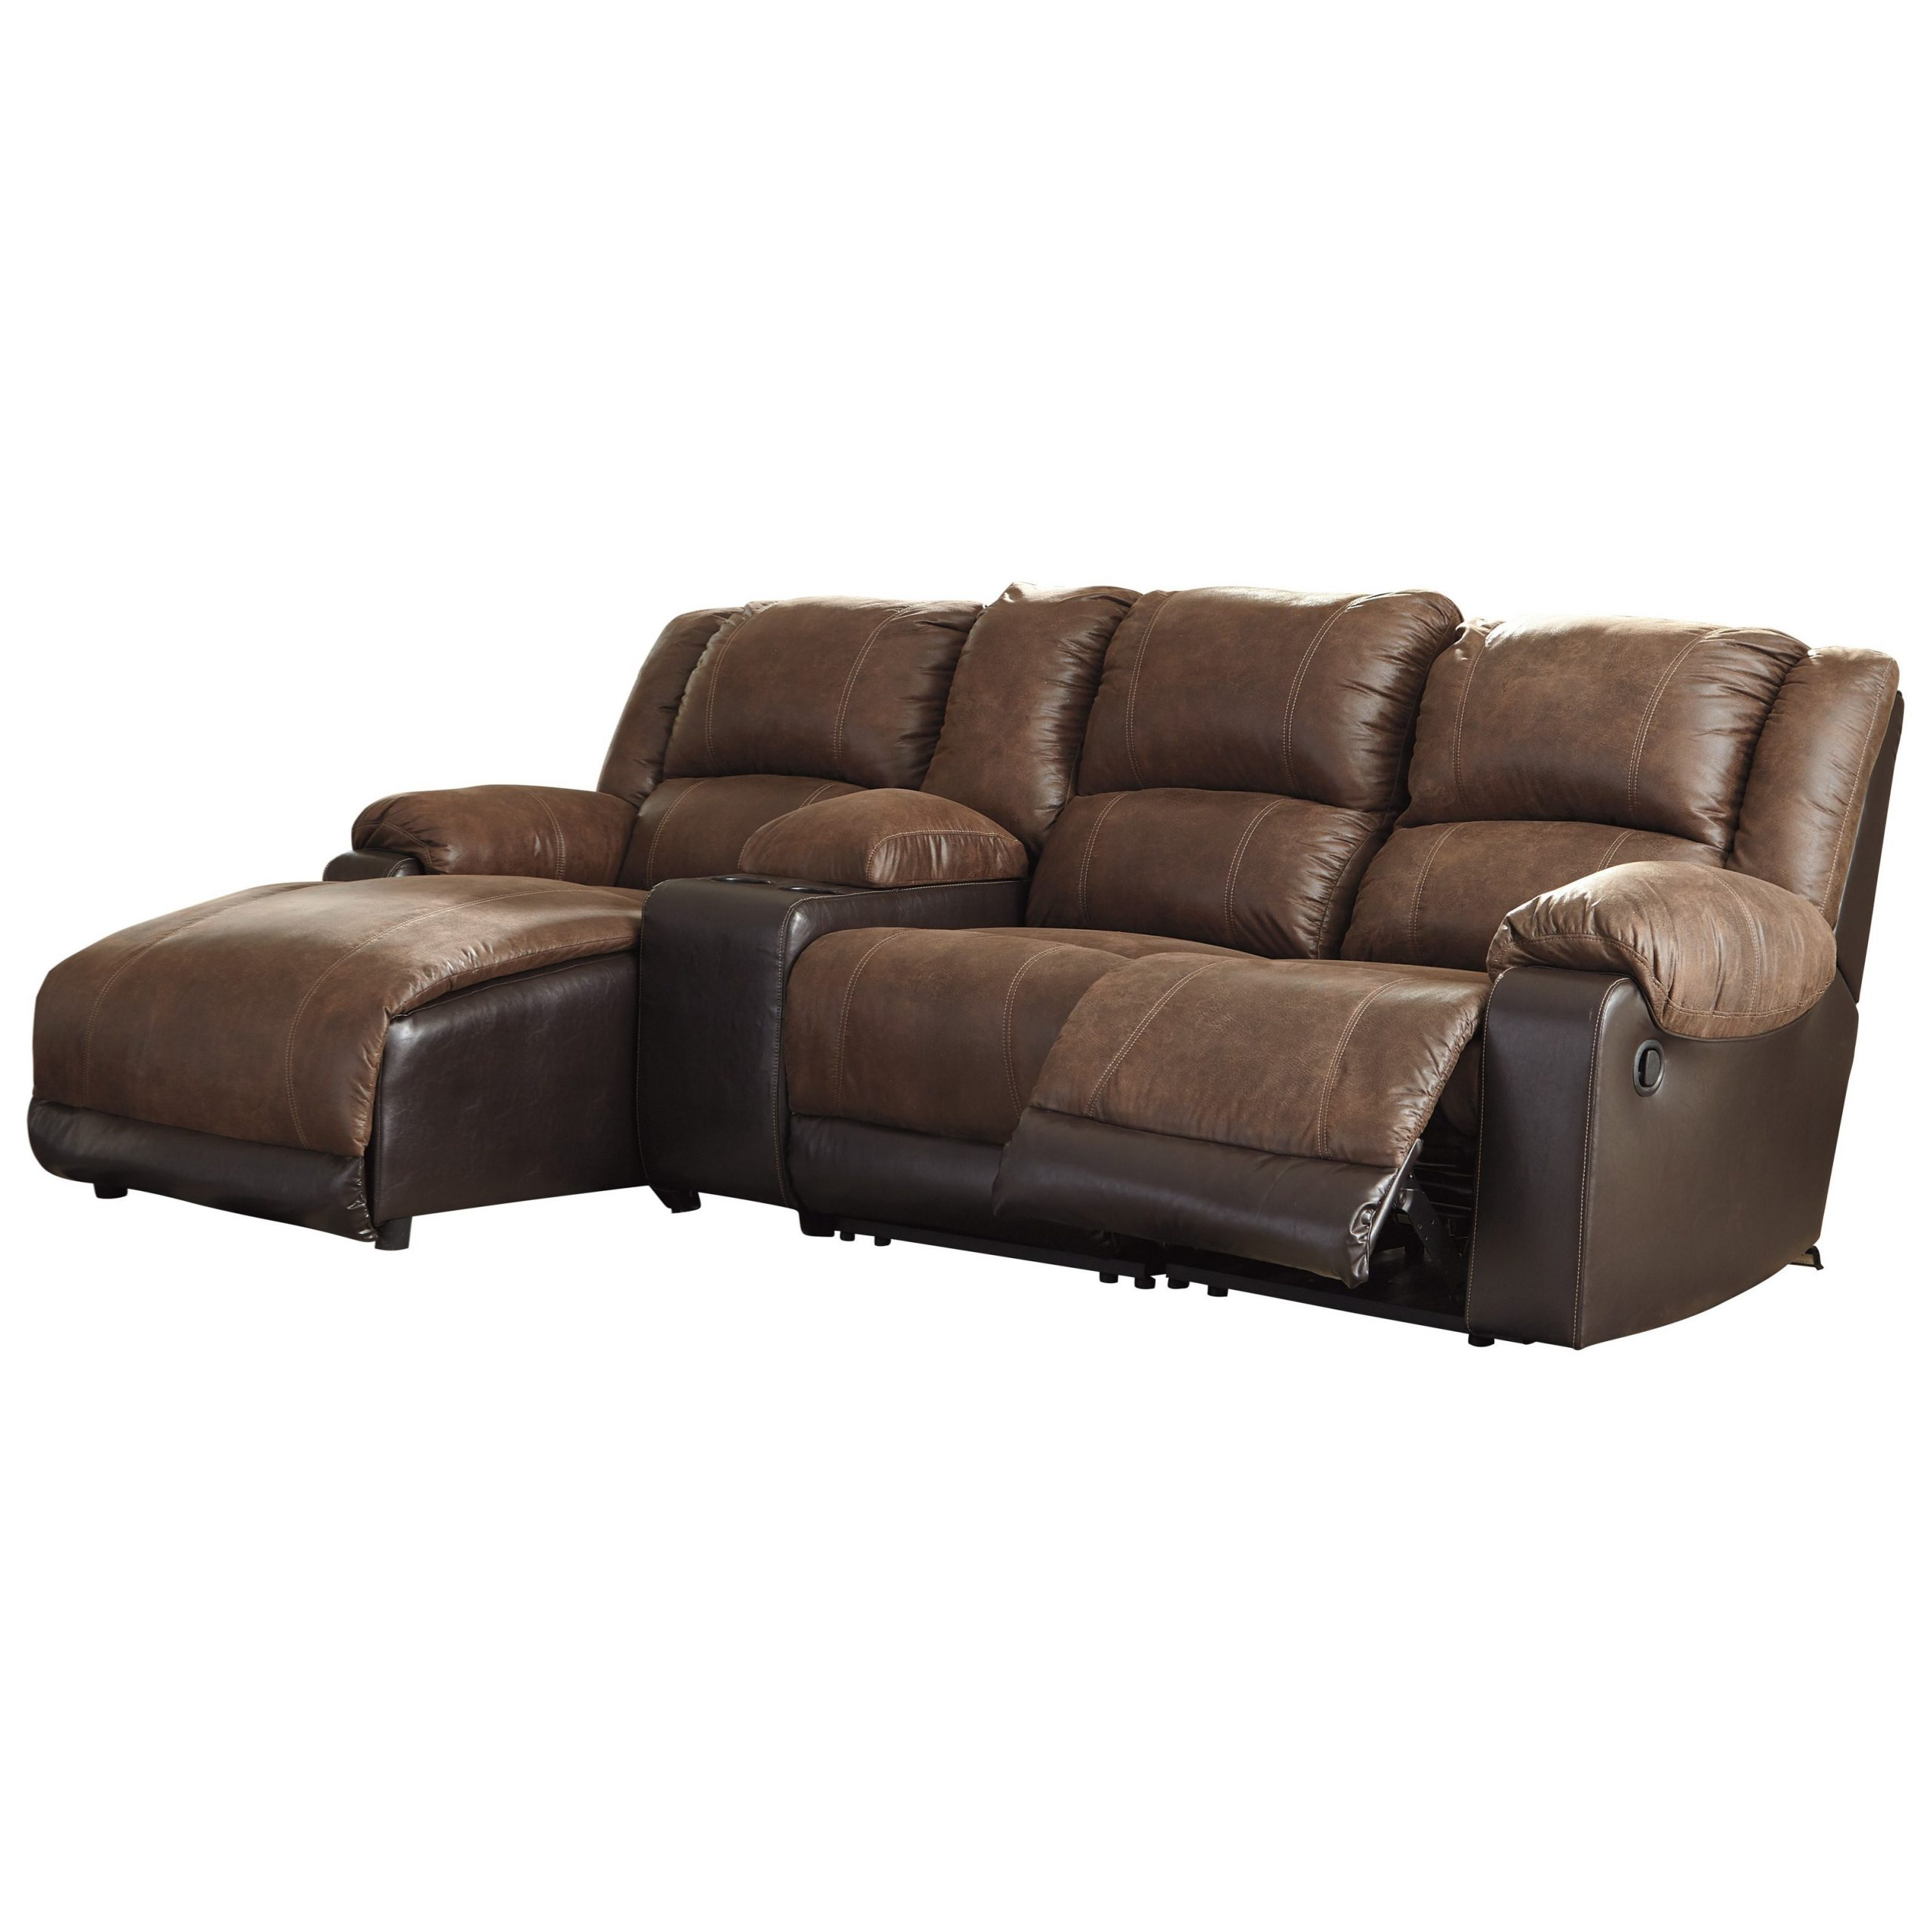 Signature Designashley Nantahala Reclining Chaise Sofa Throughout Well Known Copenhagen Reclining Sectional Sofas With Left Storage Chaise (View 25 of 25)